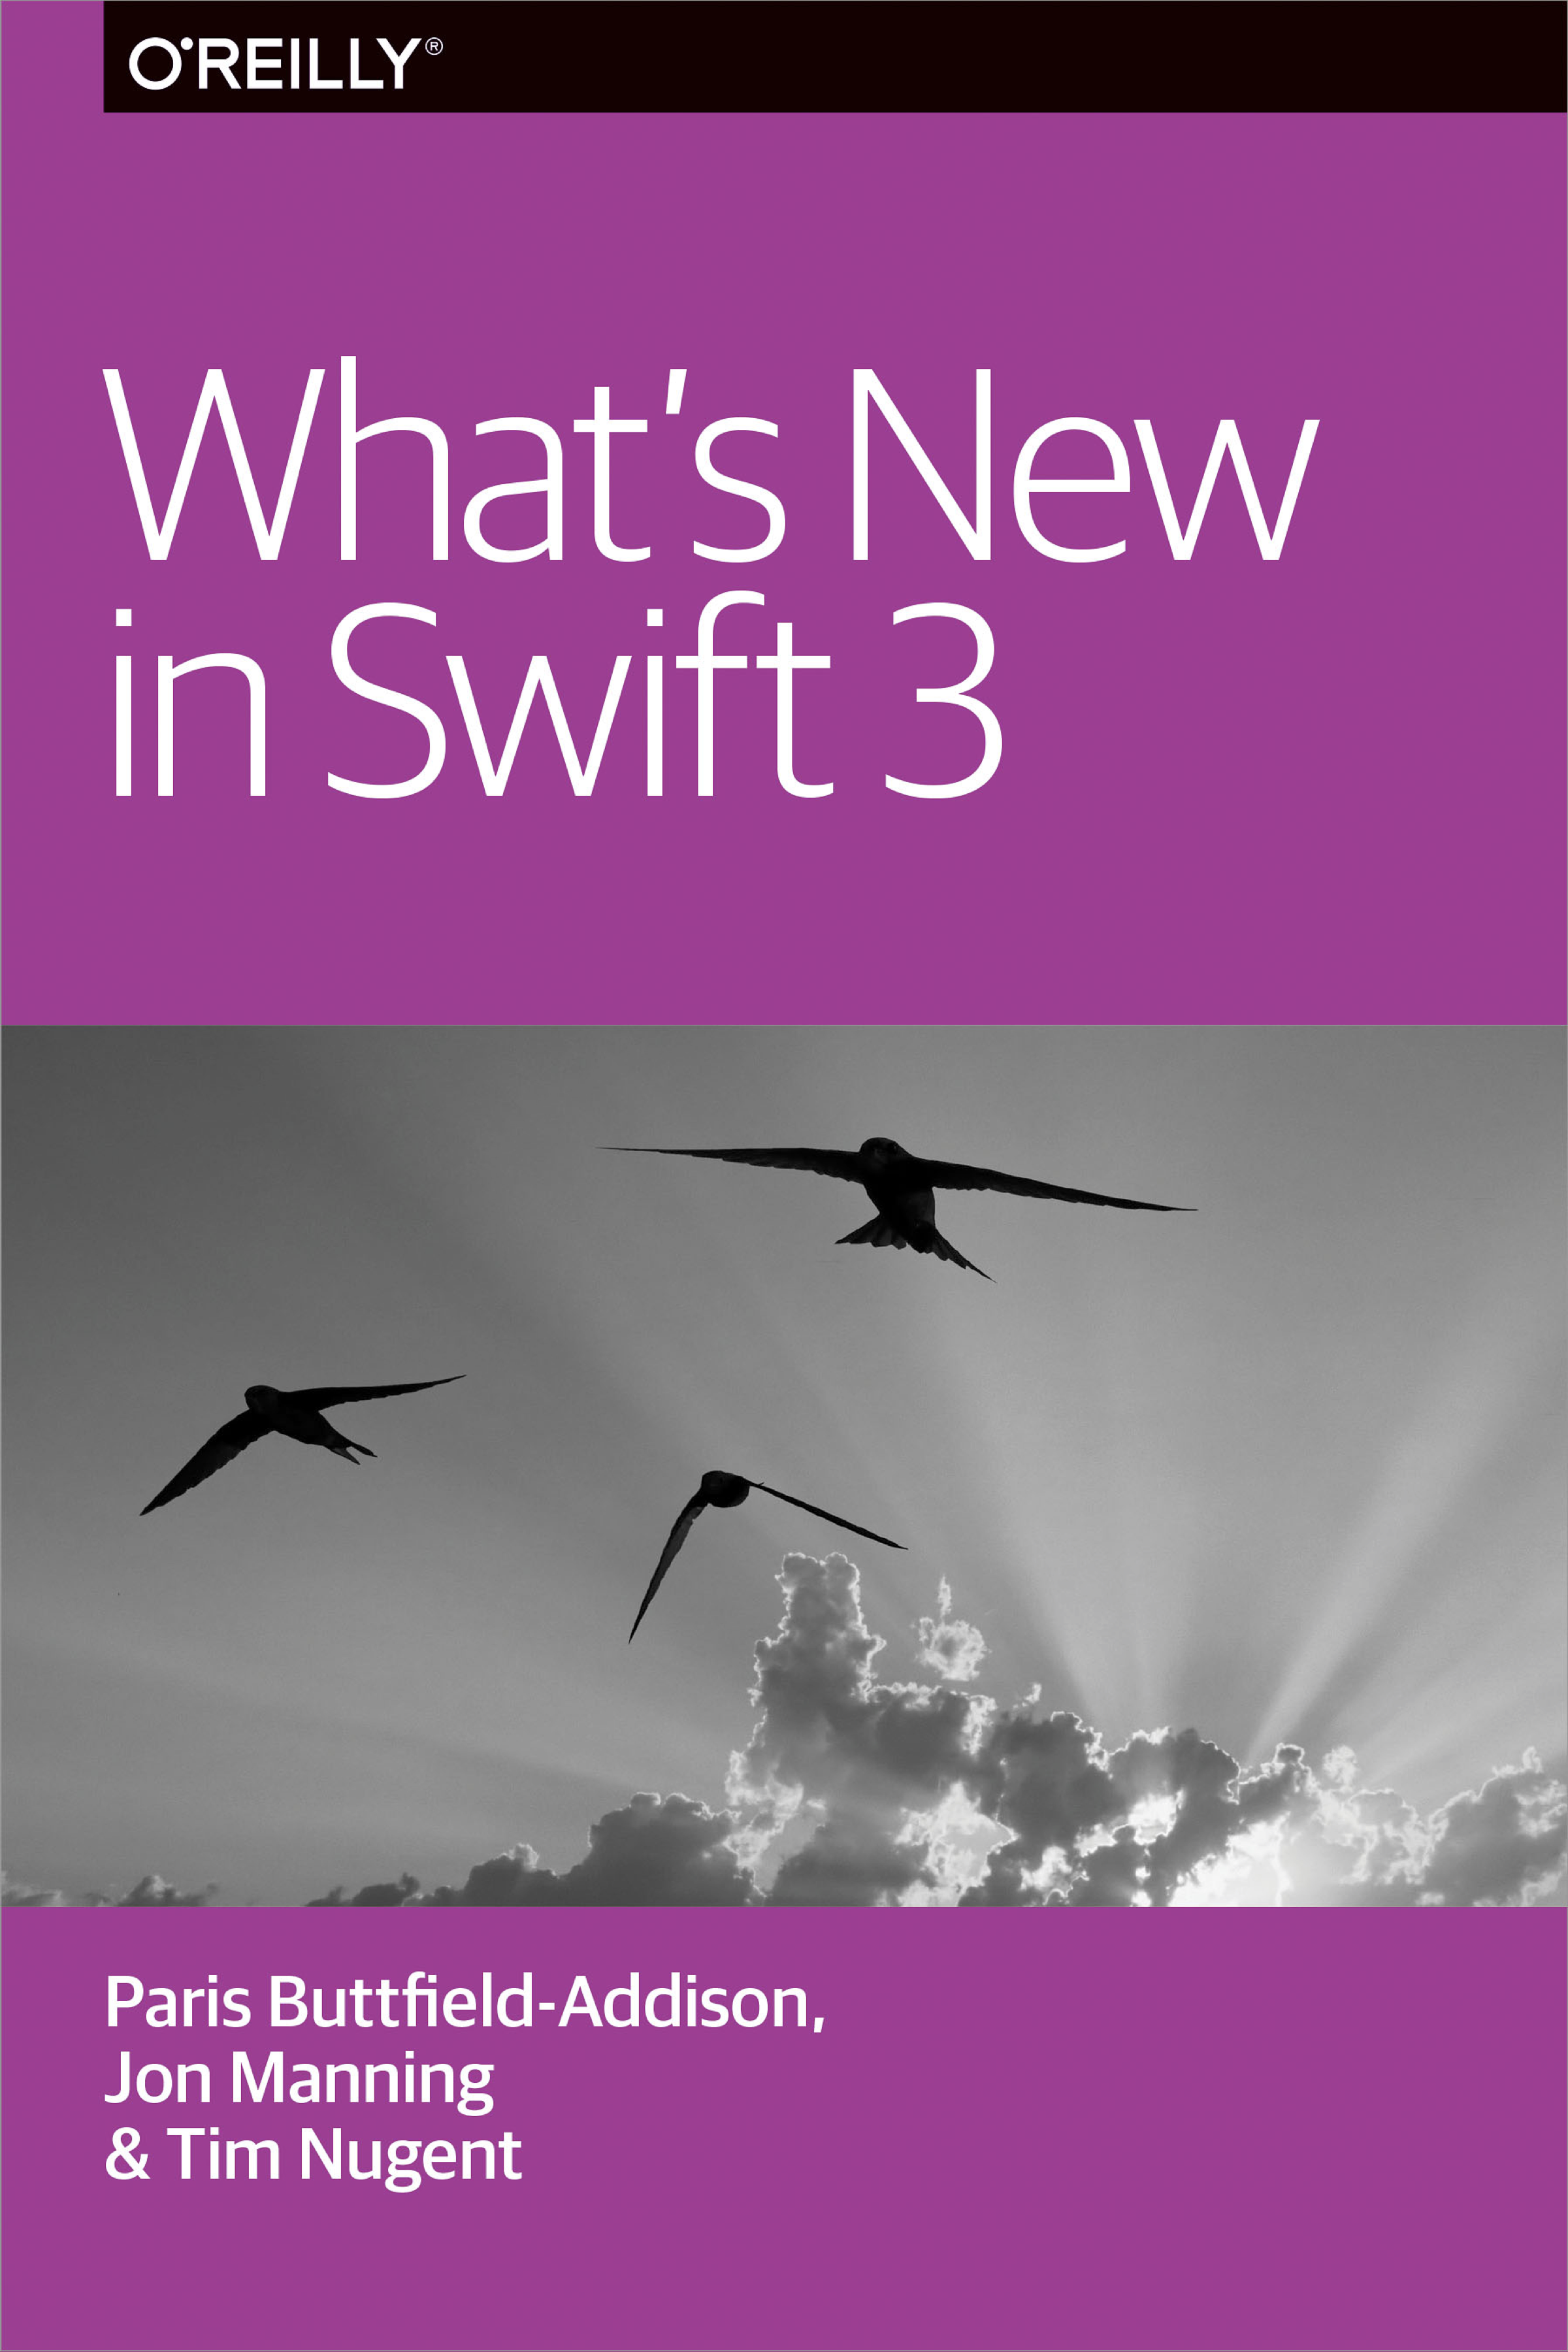 whats-new-in-swift-3.png